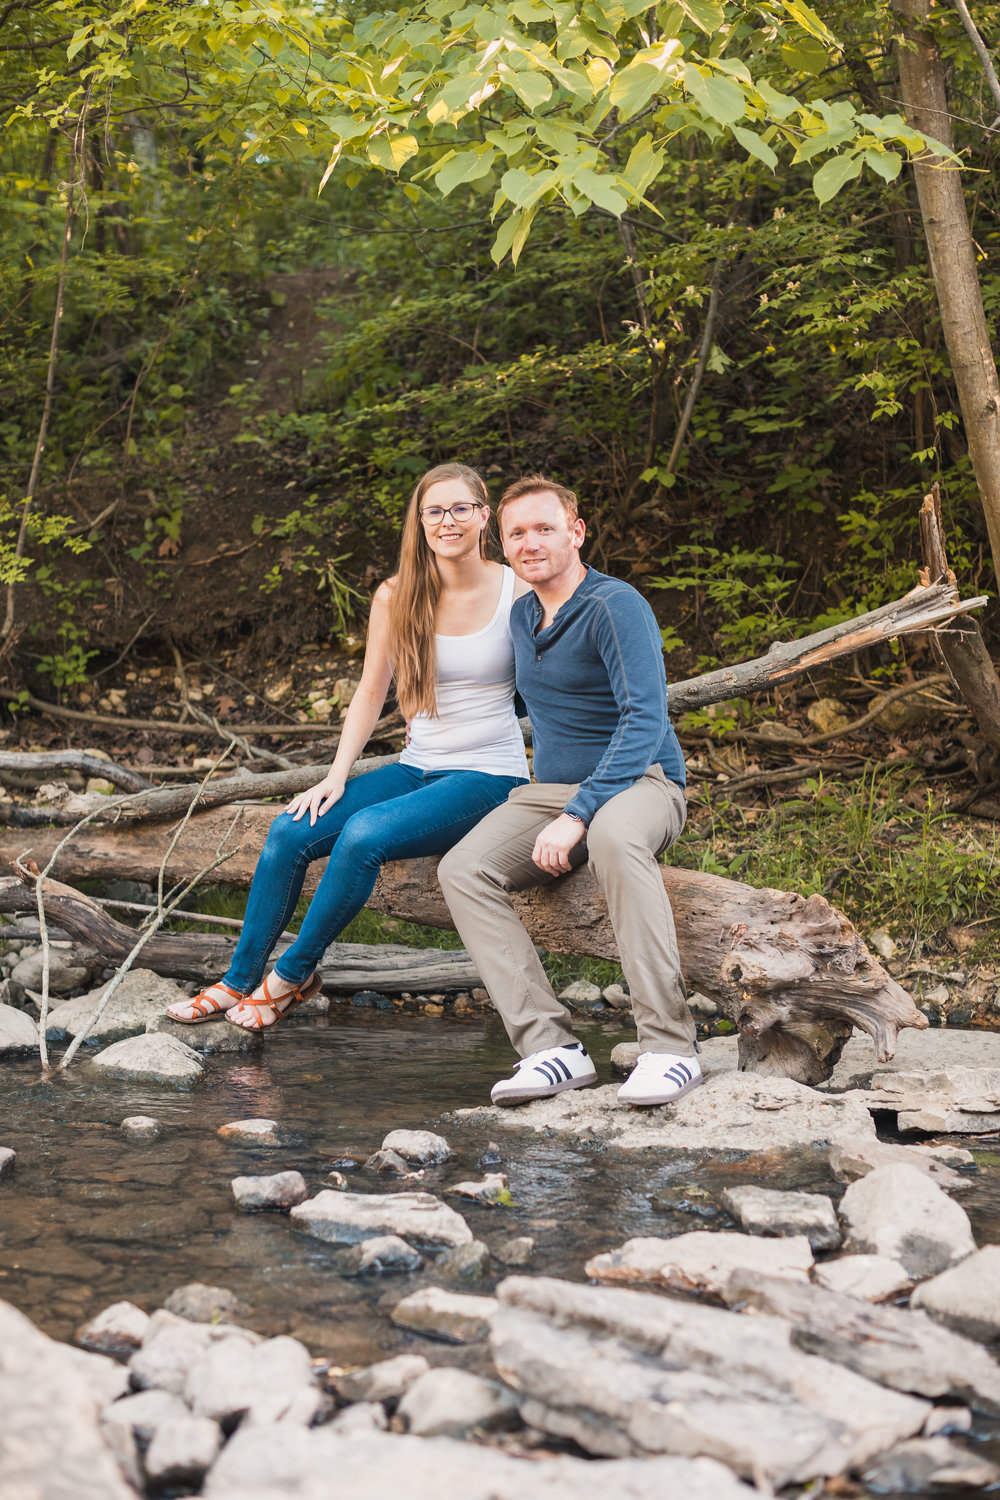 amanda+sean_engagement_20180603_03.jpg